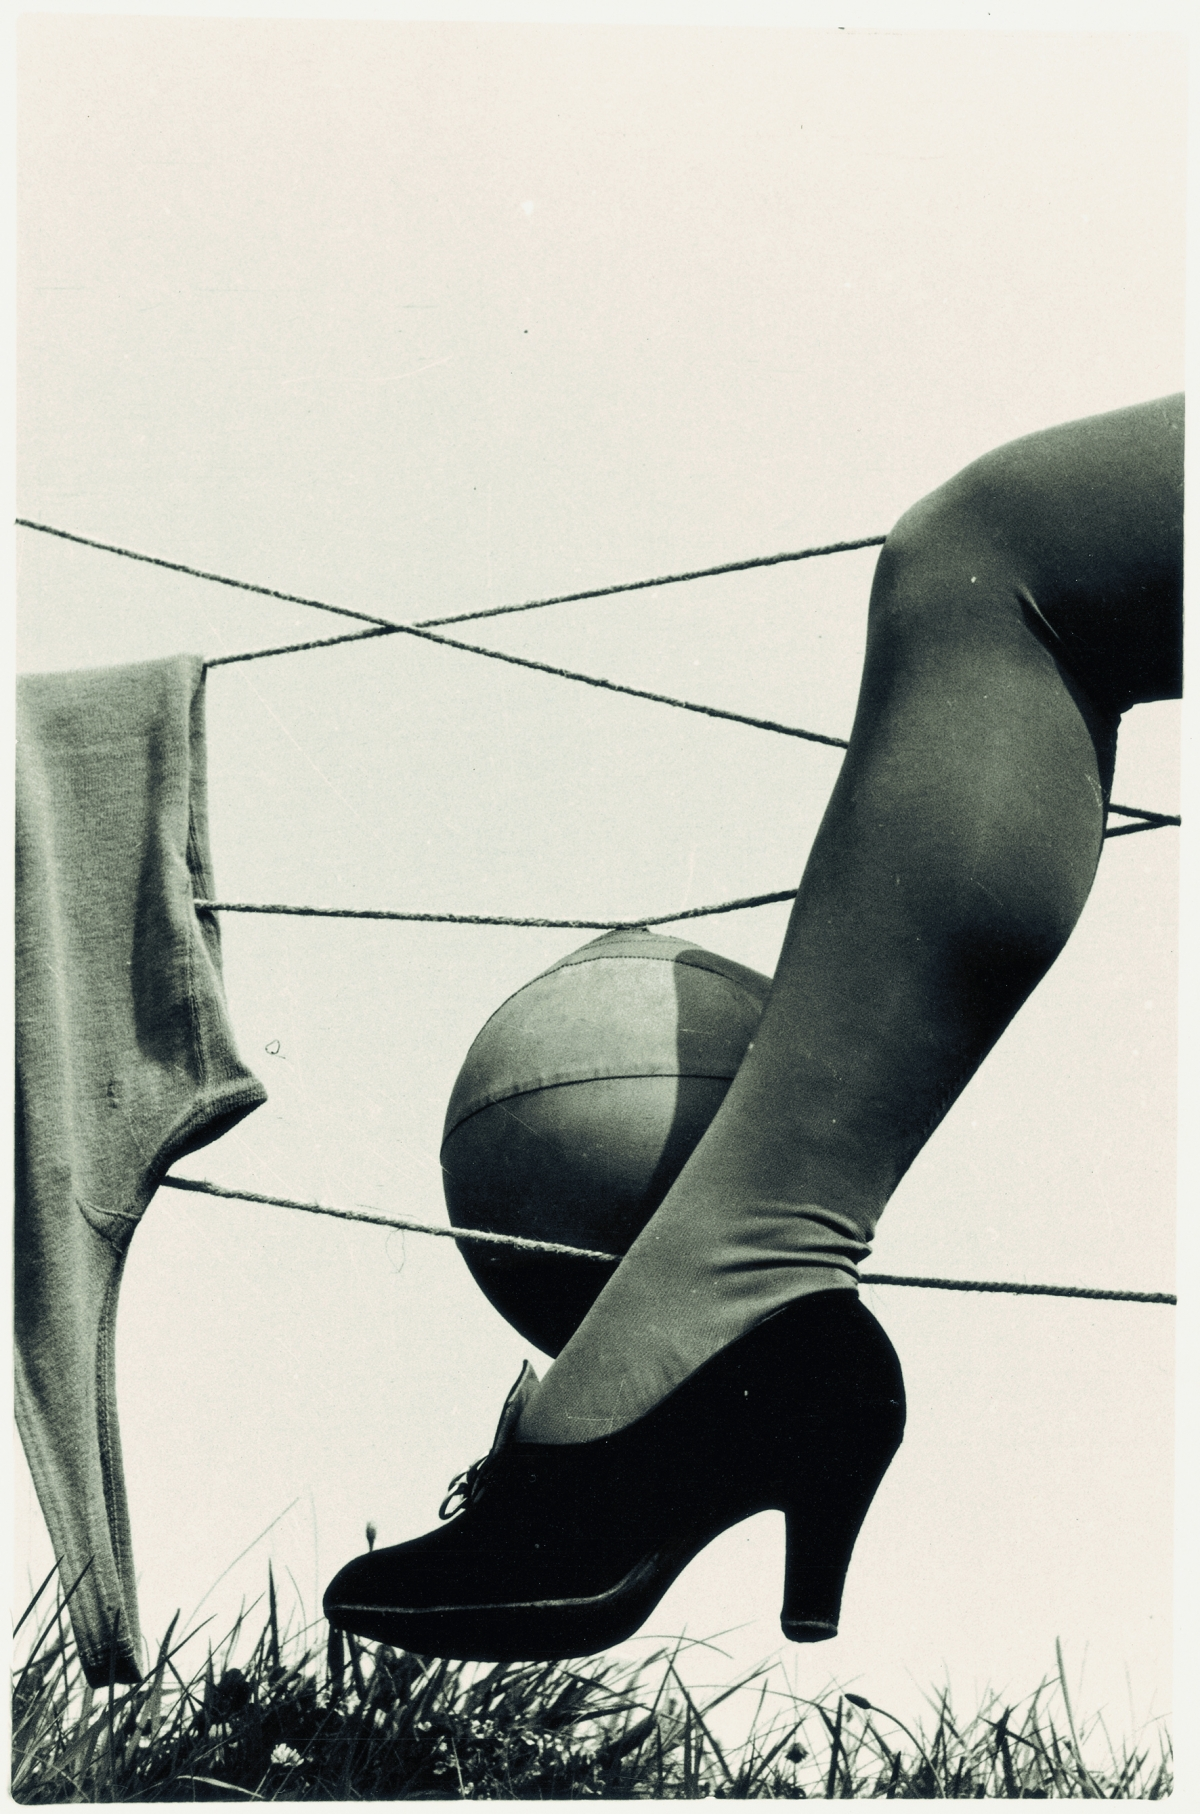 Josef Bartuška, Composition with leg and ball